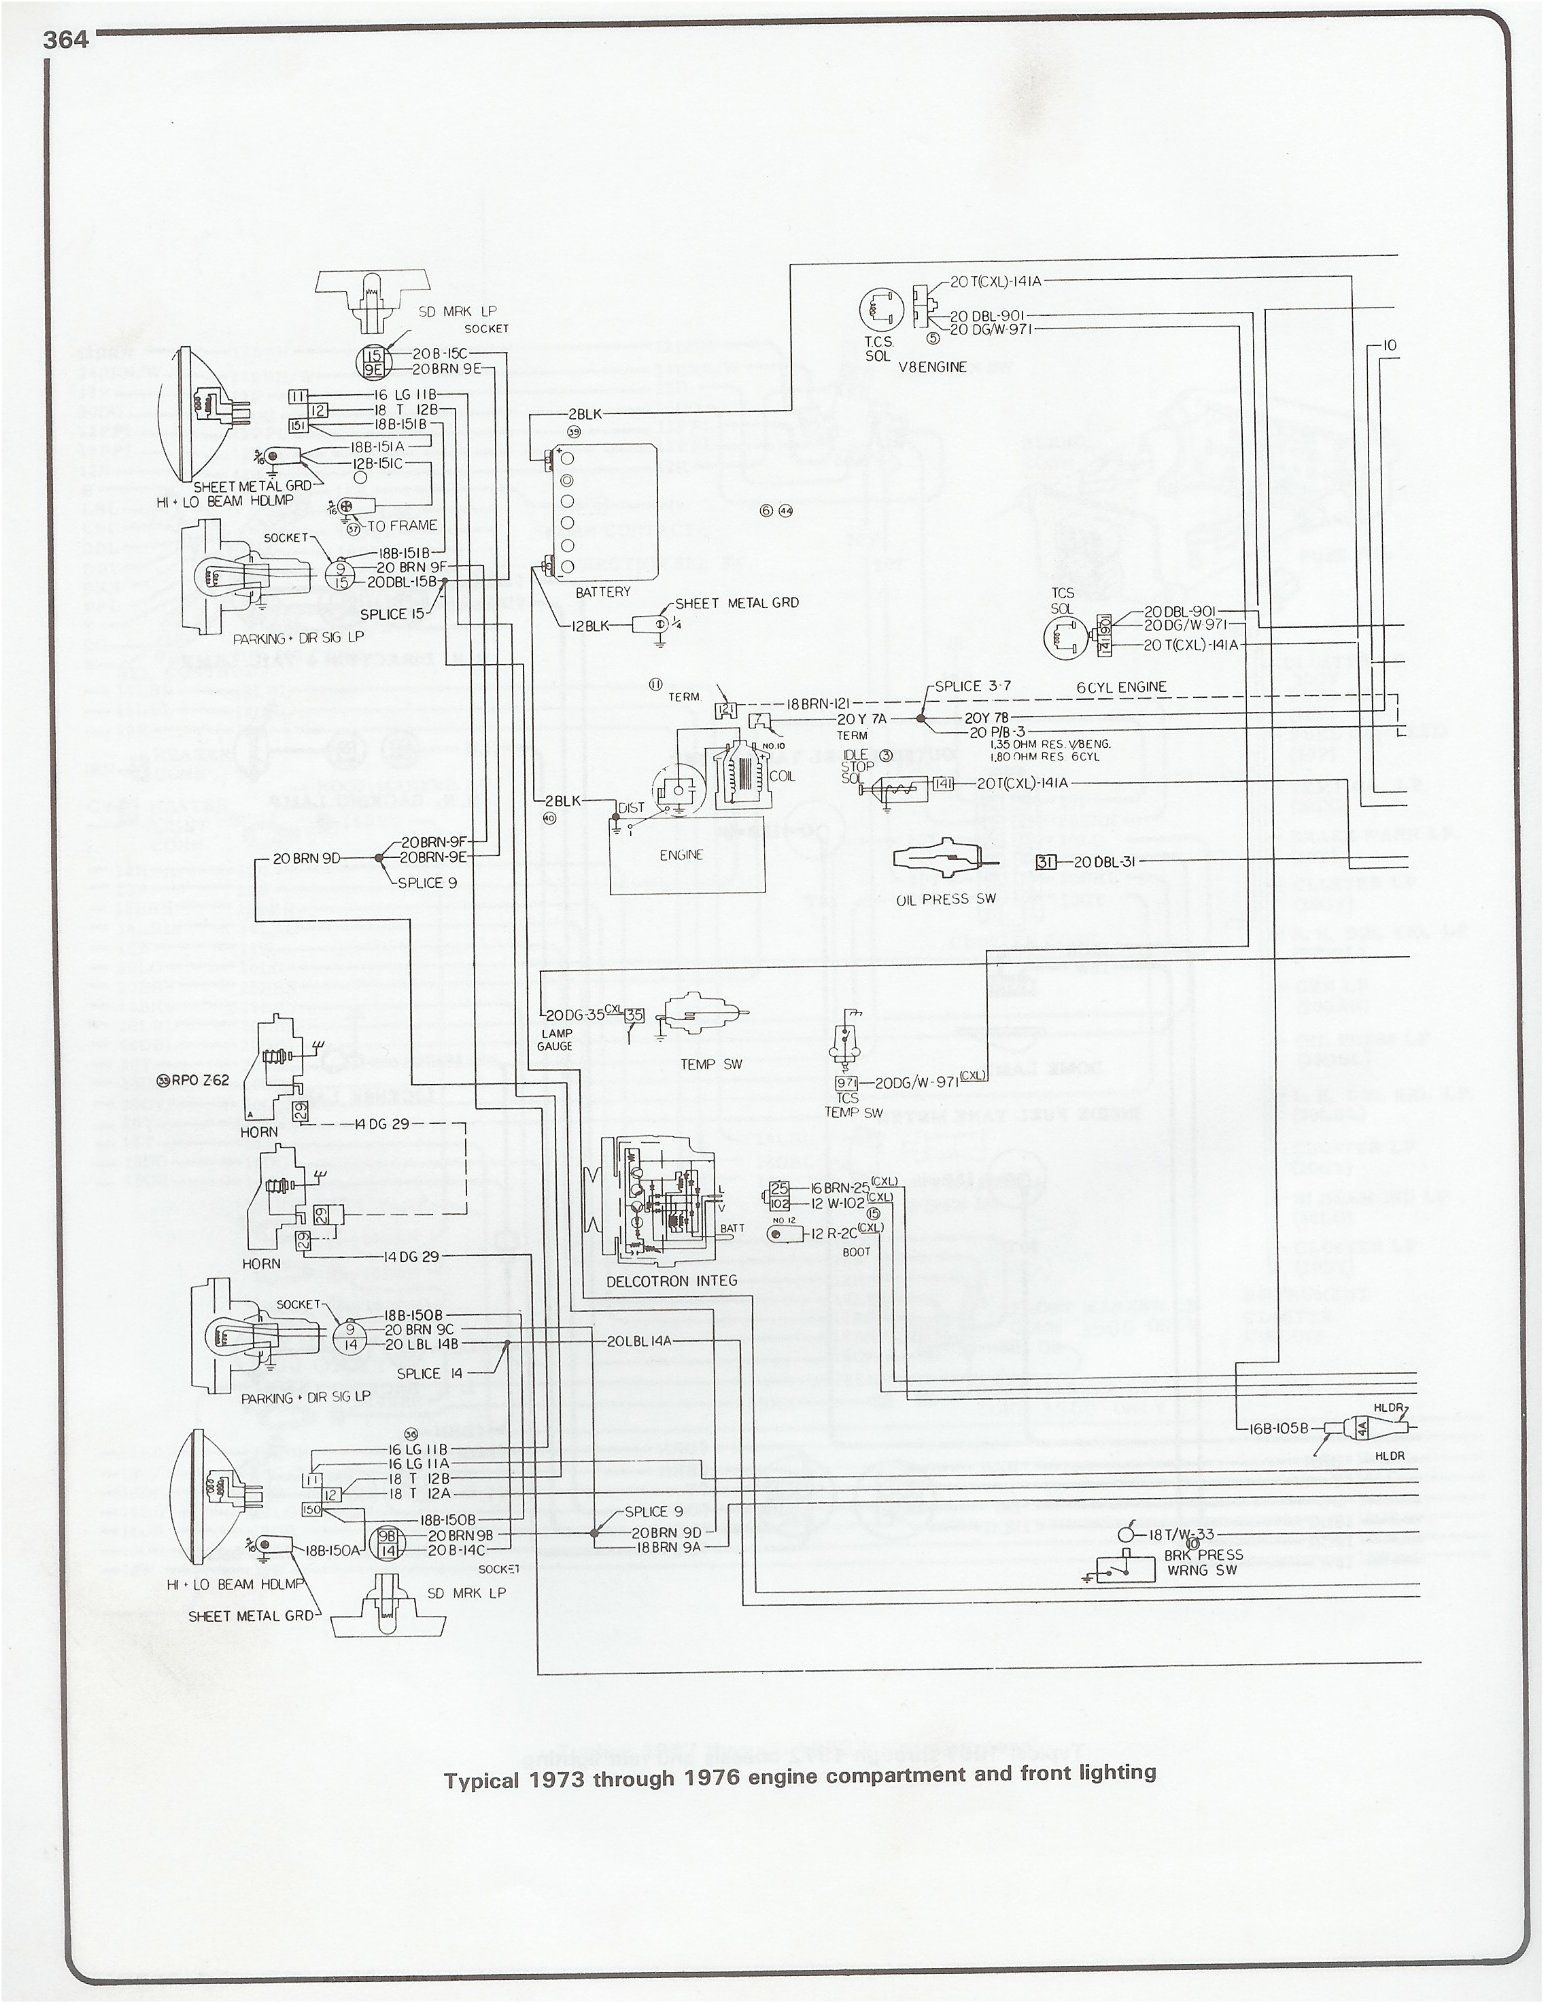 b46c0c014ab7ae7becc2b916945faf15 wiring diagram 1973 1976 chevy pickup chevy wiring diagram 1976 camaro wiring diagram at fashall.co